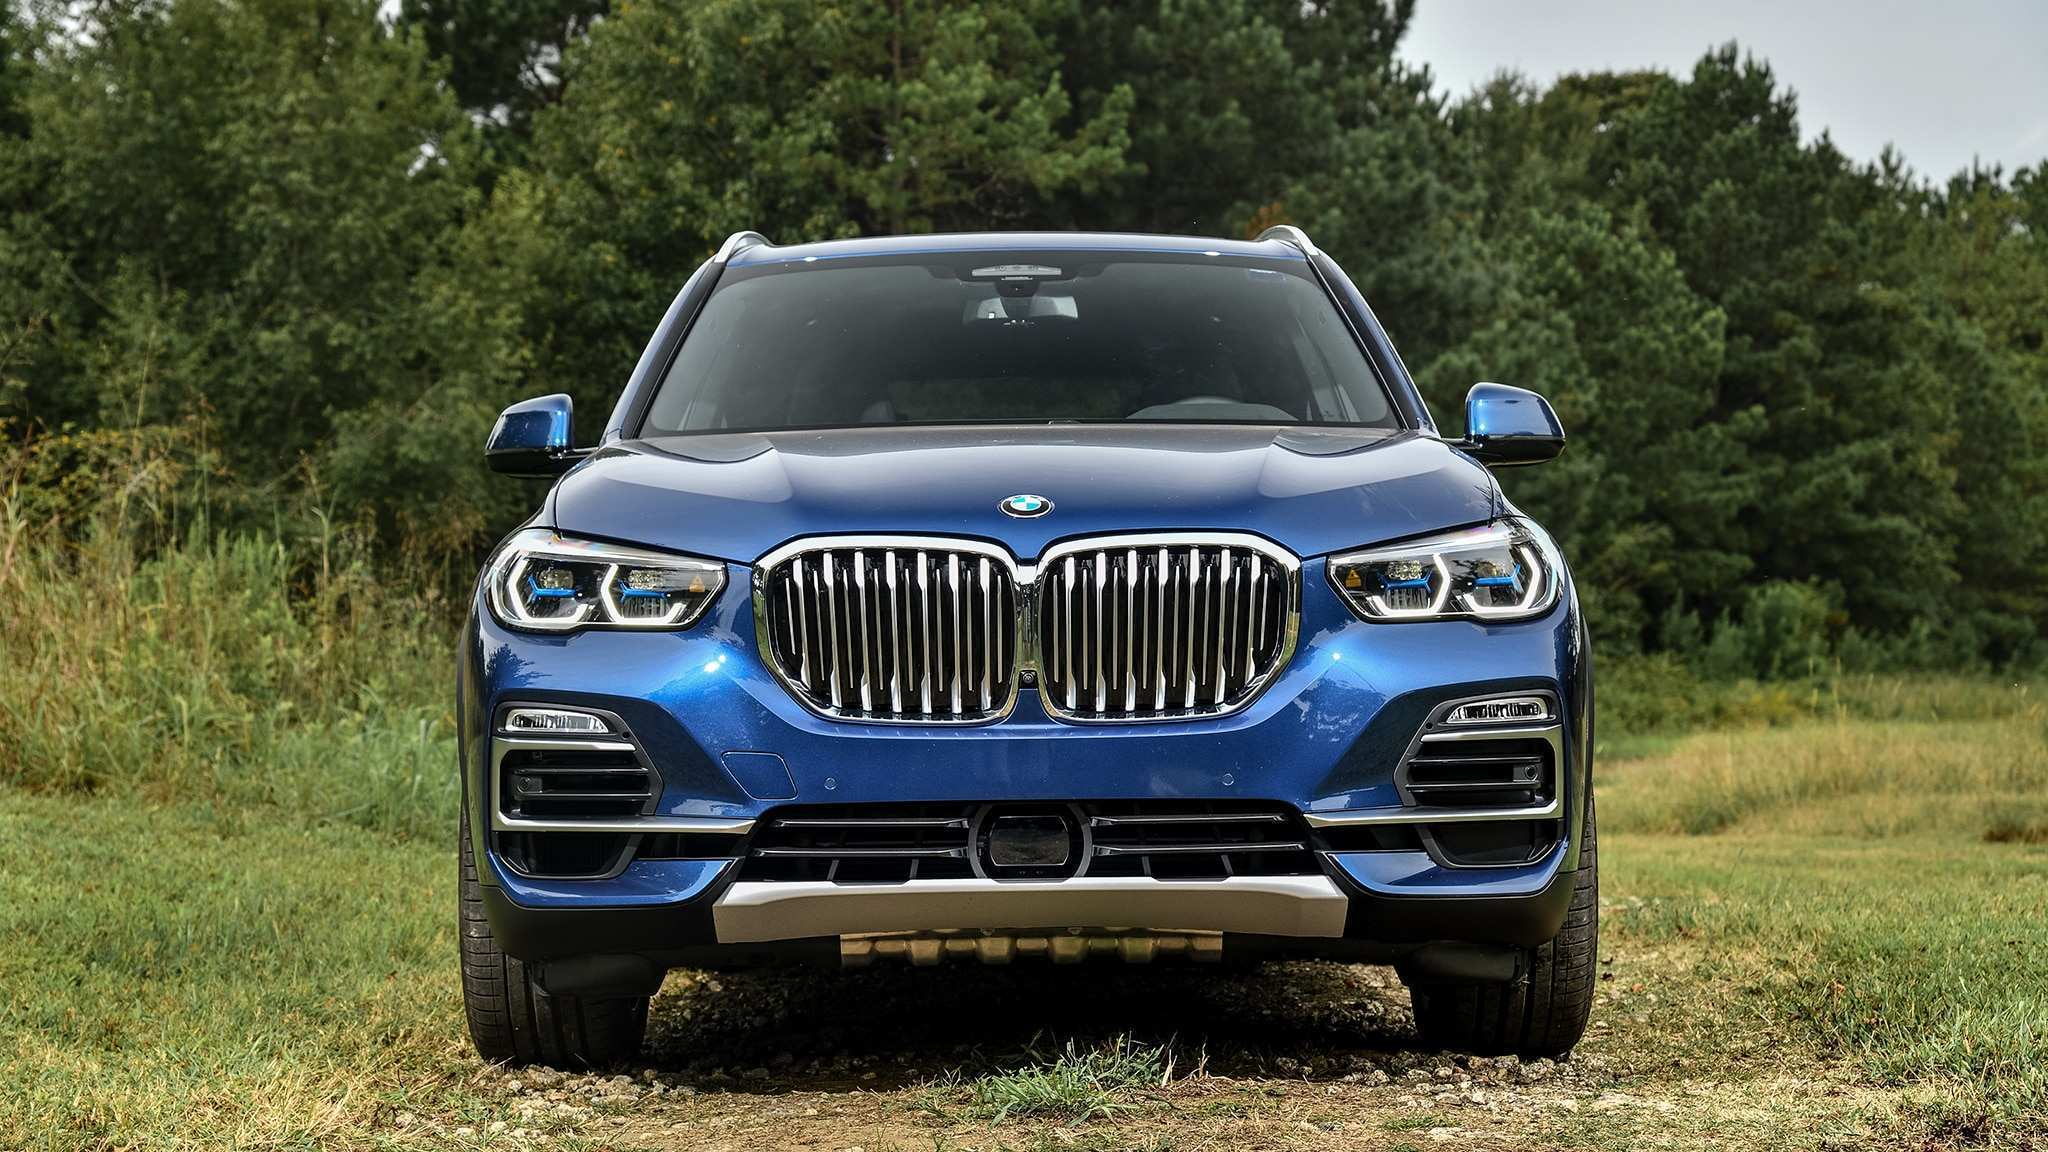 48 The 2019 Bmw Terrain Gas Mileage Rumors by 2019 Bmw Terrain Gas Mileage